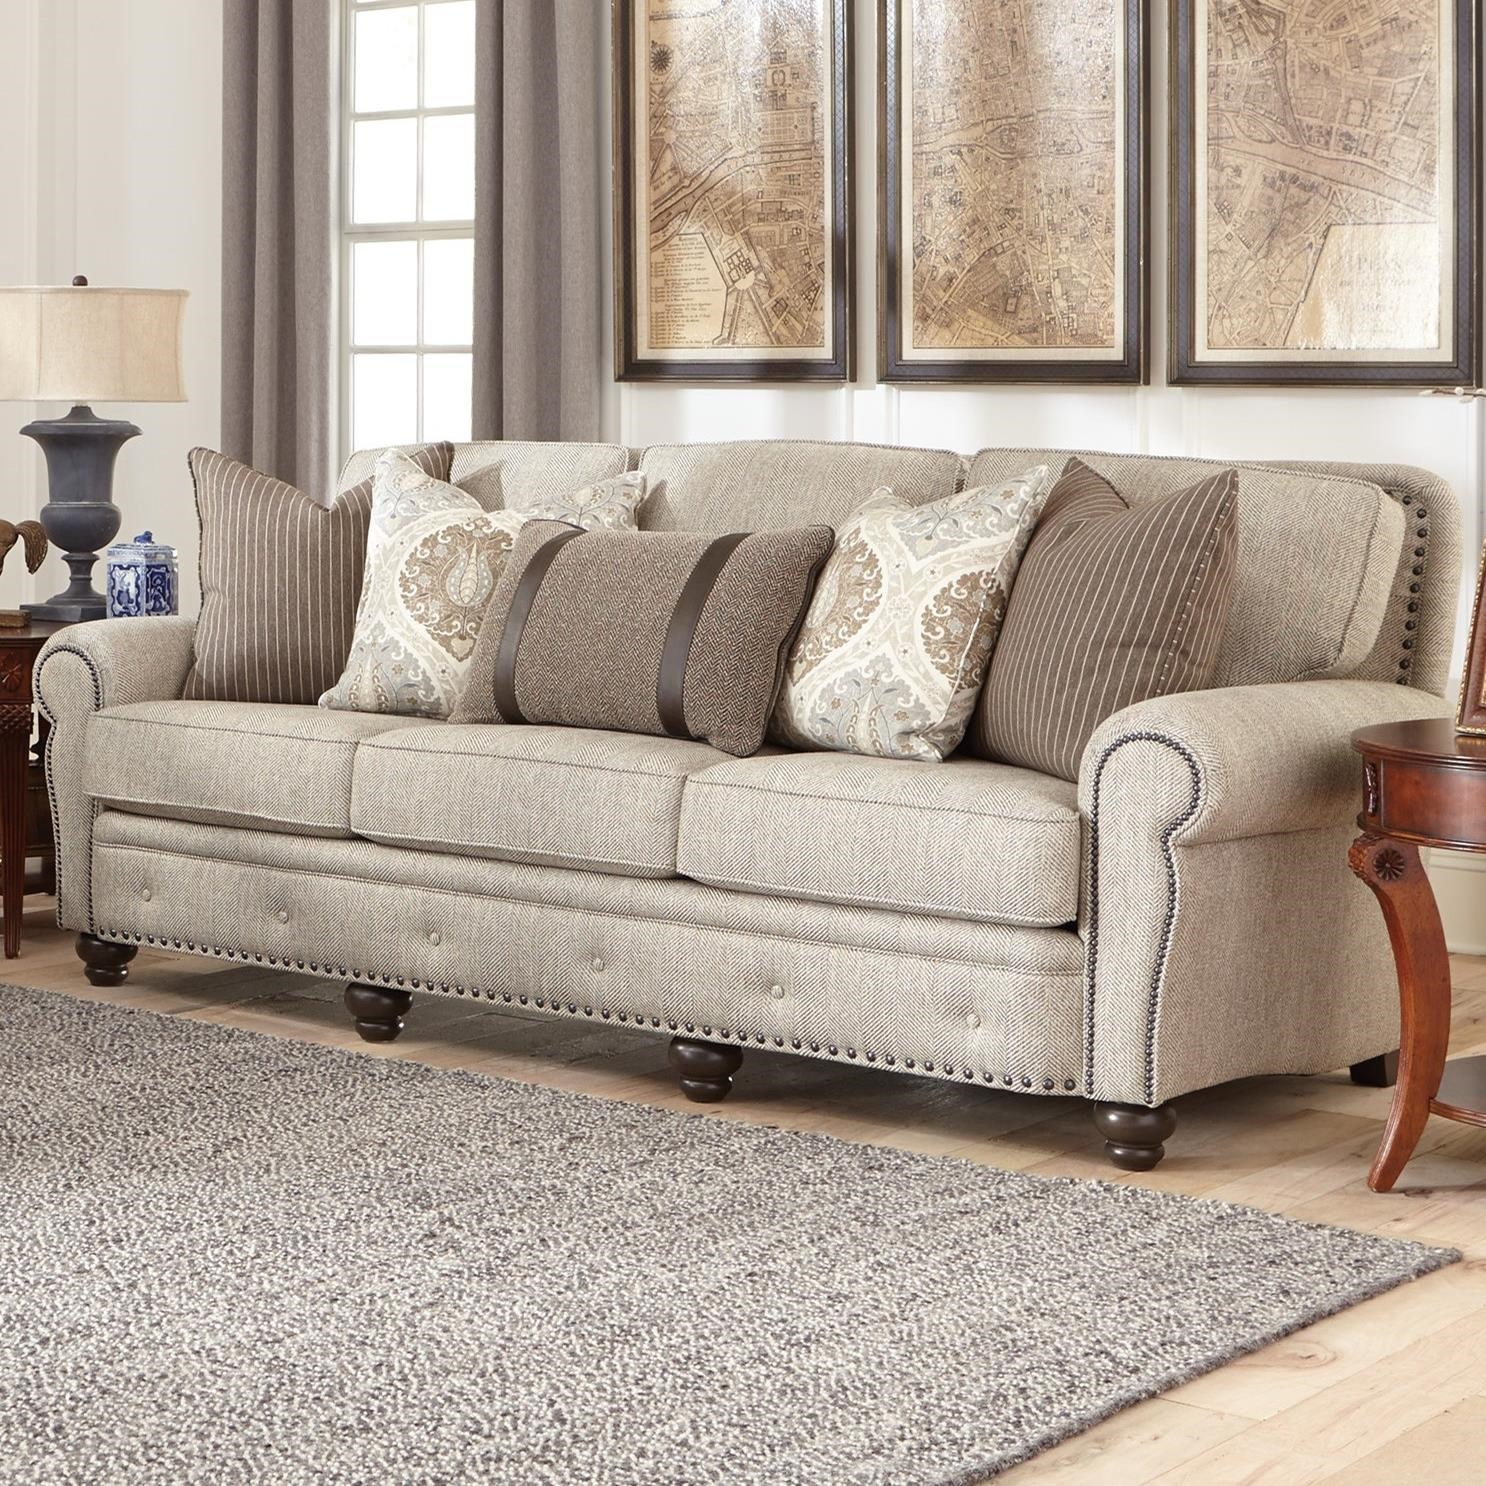 Ordinaire Traditional Large Sofa With Nailhead Trim